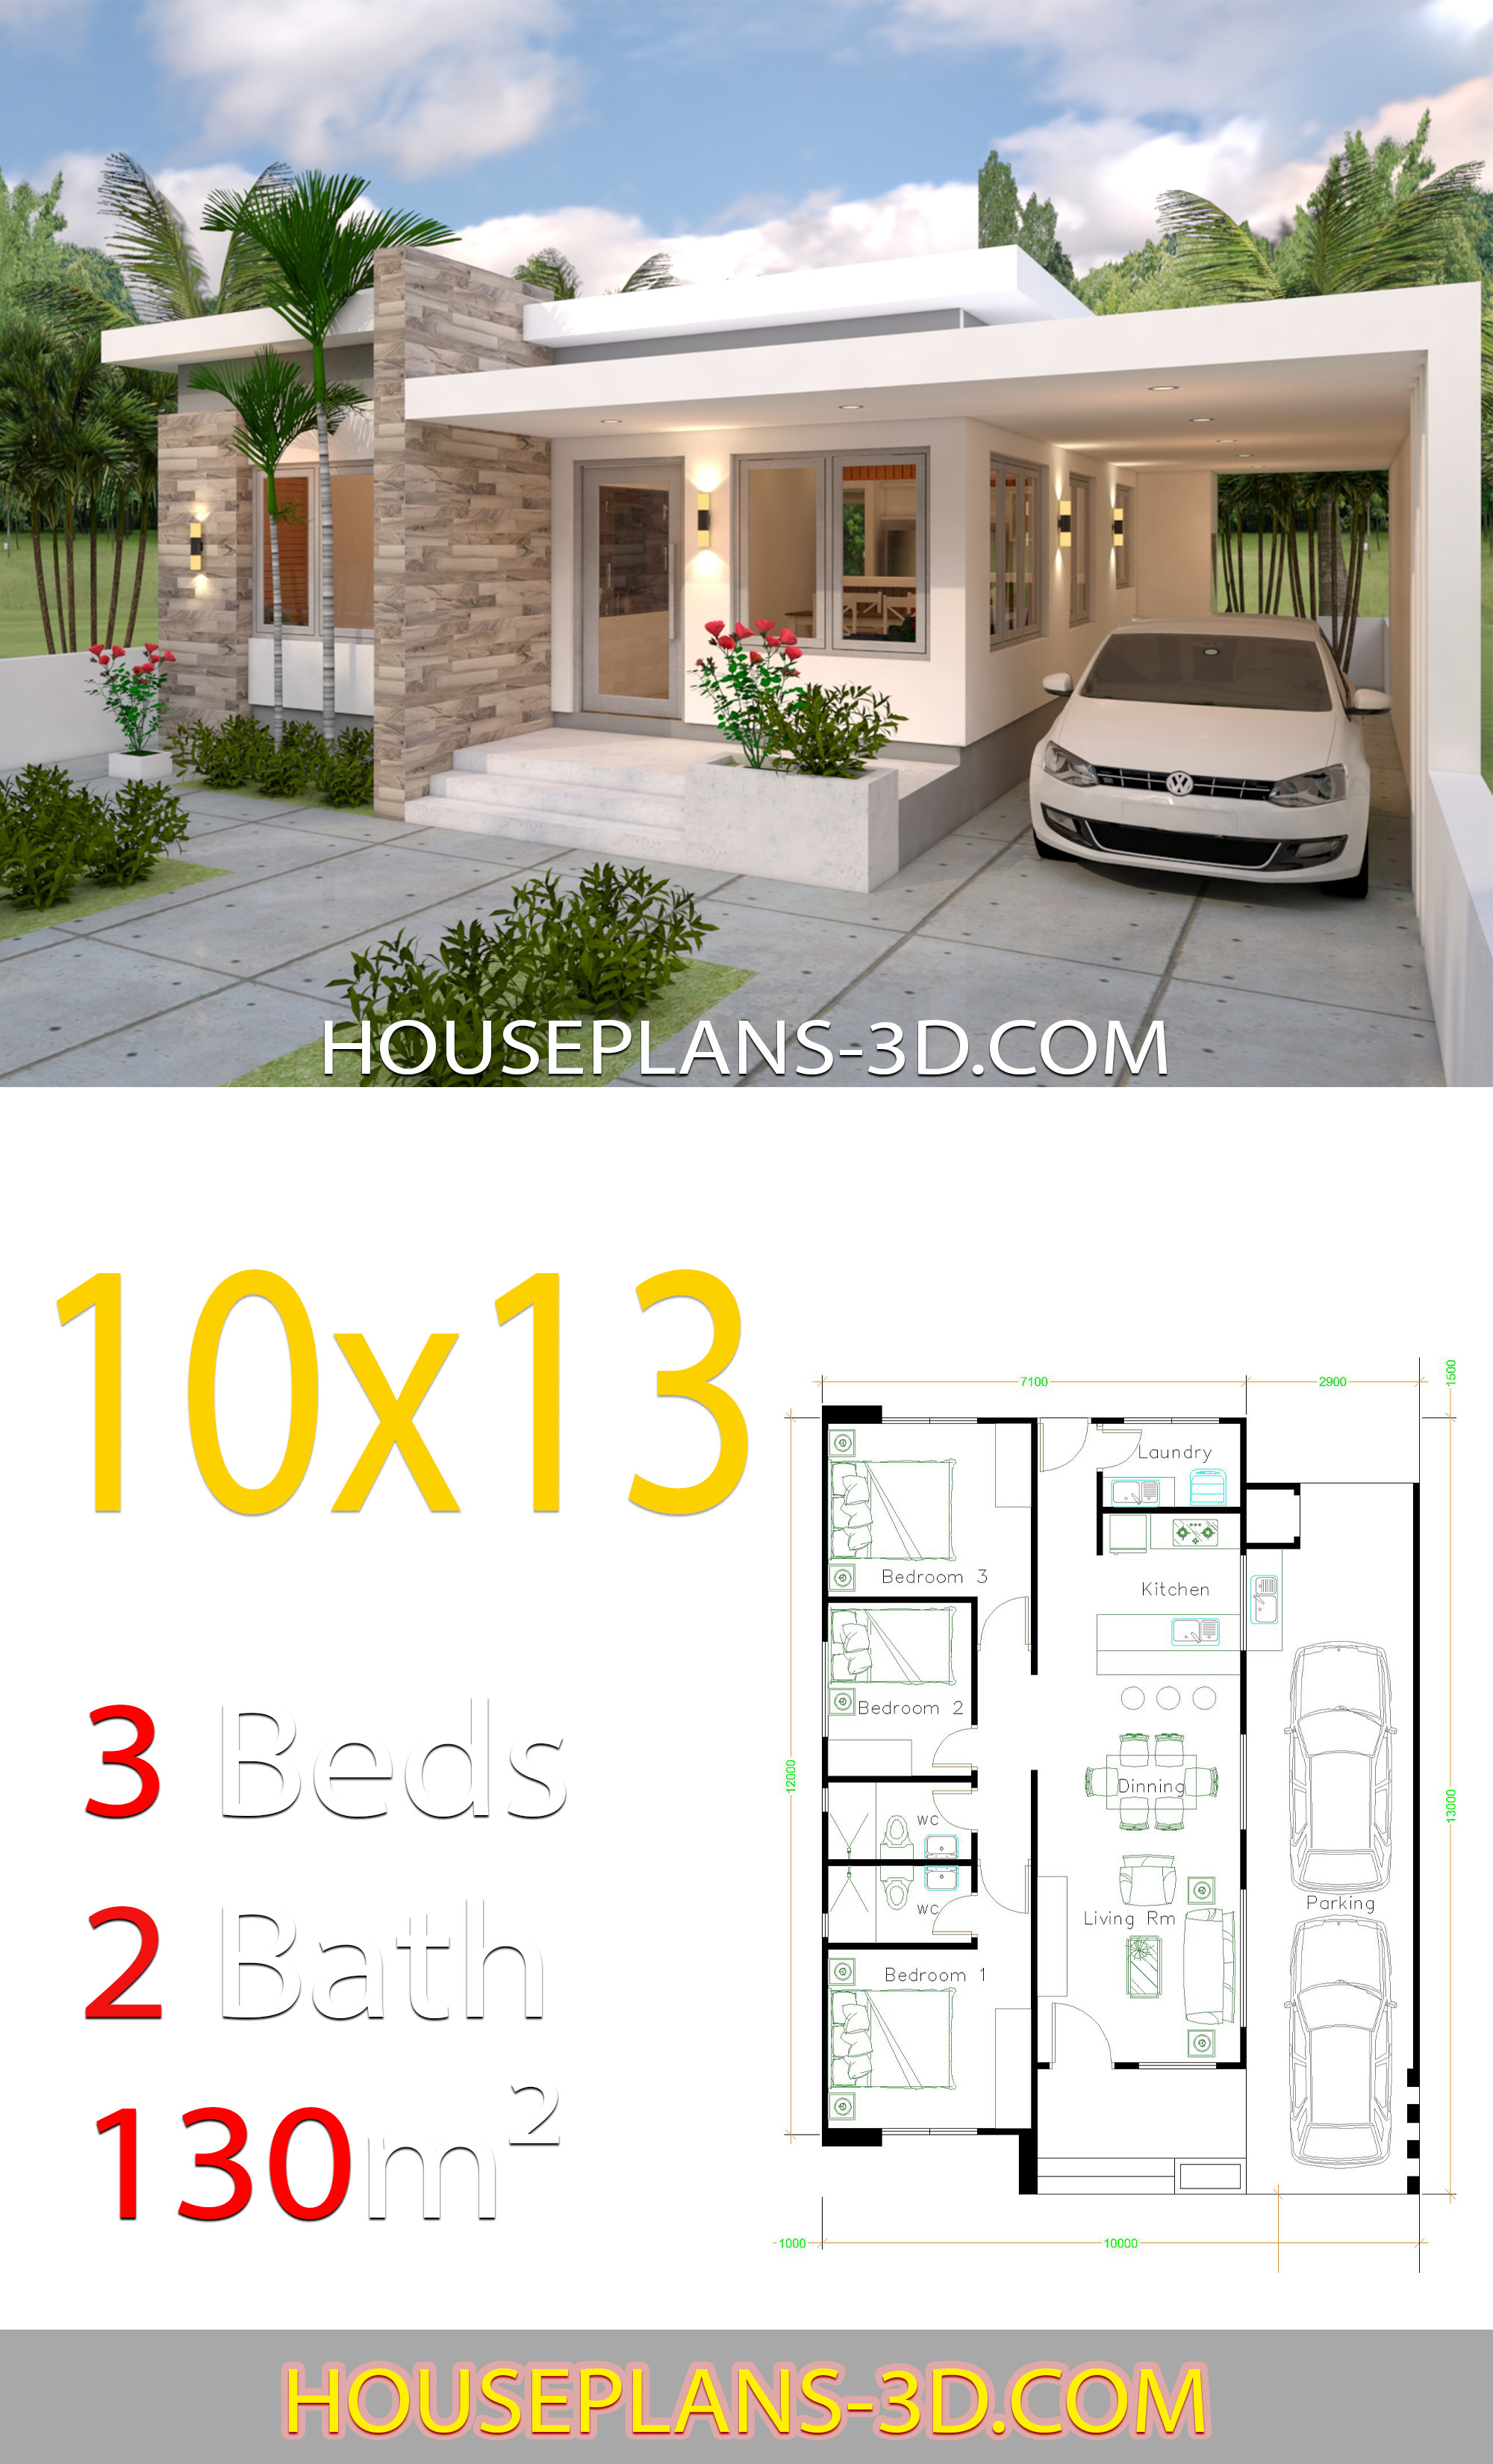 House Plans and Designs Inspirational House Design 10x13 with 3 Bedrooms Full Plans House Plans 3d